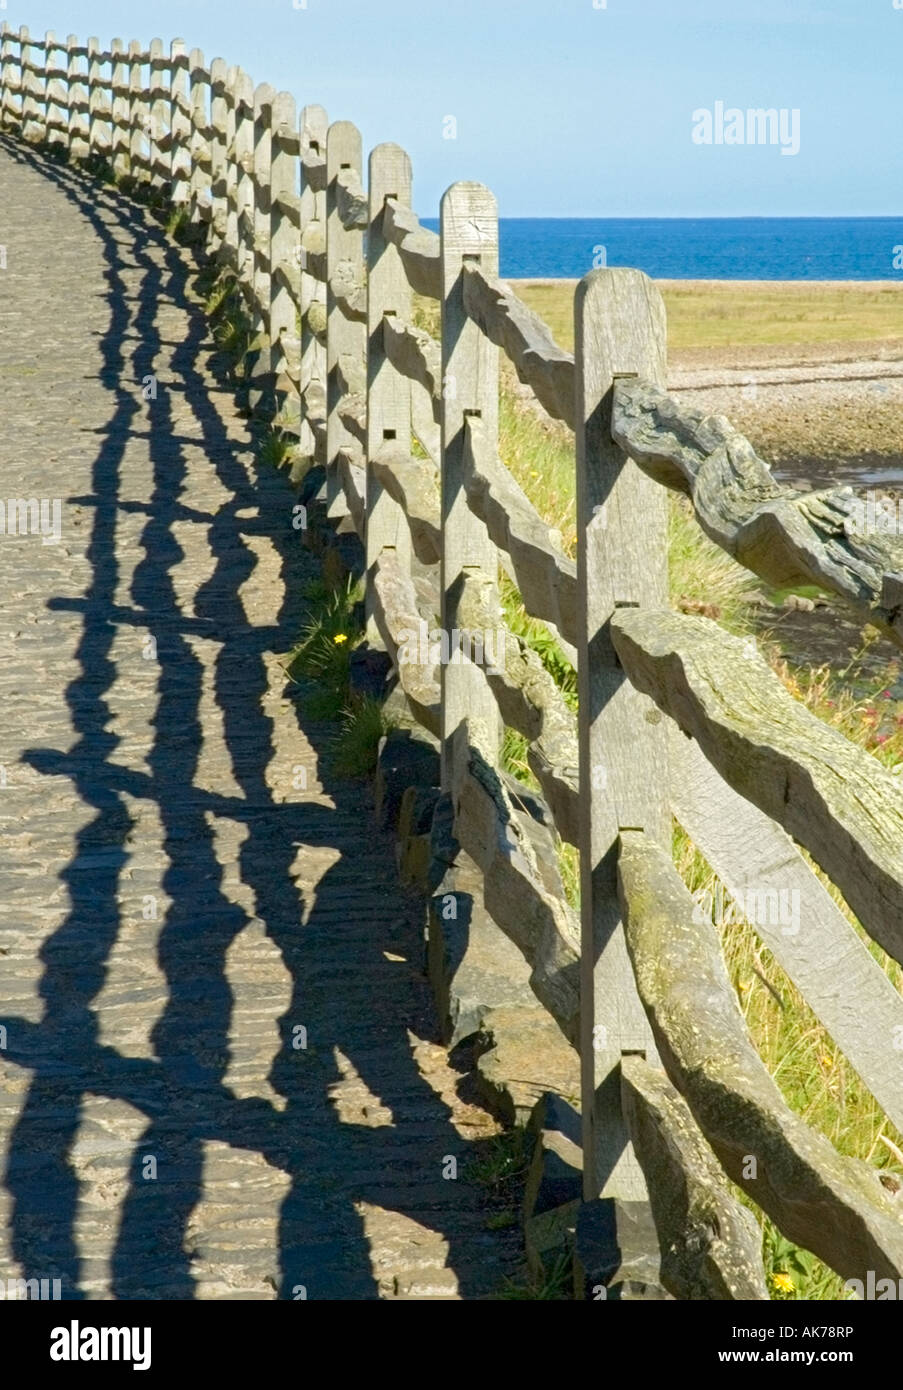 Rustic wooden fence bordering a steep path and casting a strong shadow - Stock Image